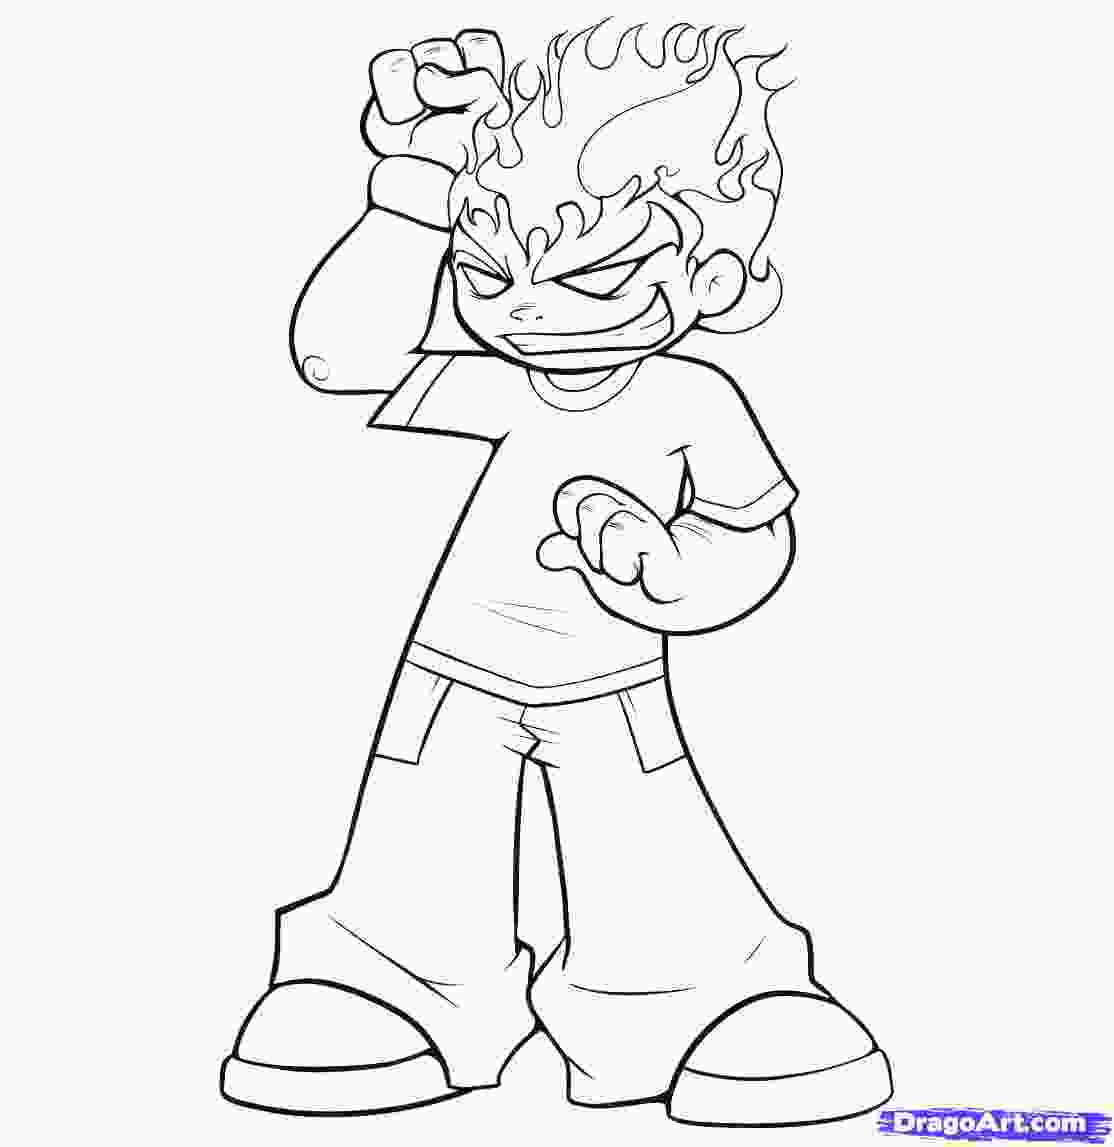 cartoon characters drawing how to draw a simple cartoon step by step cartoons